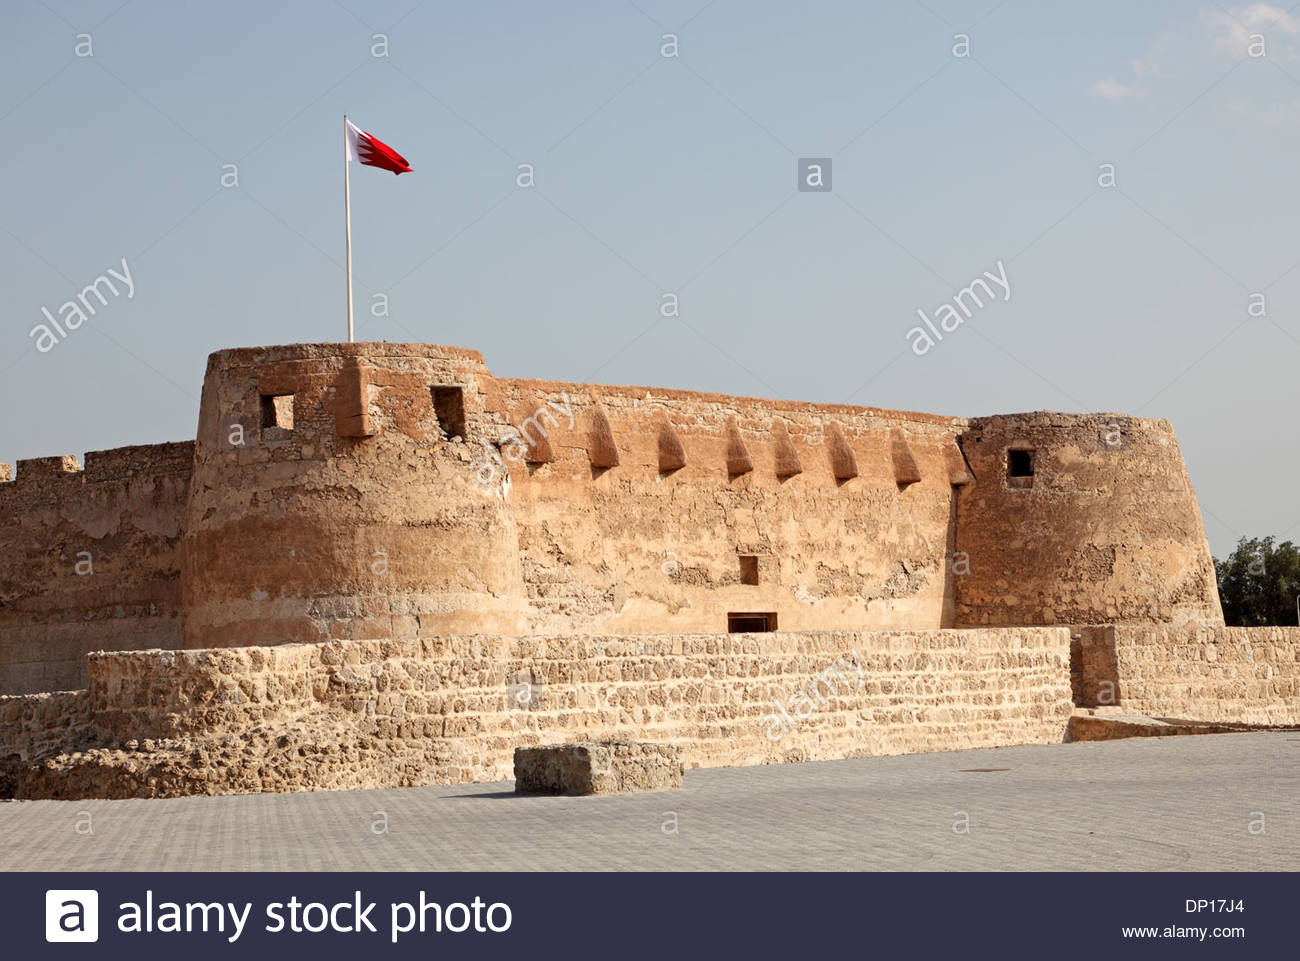 Qala'at Arad Muharraq Island, Arad Stock Photos & Arad Stock Images - Alamy